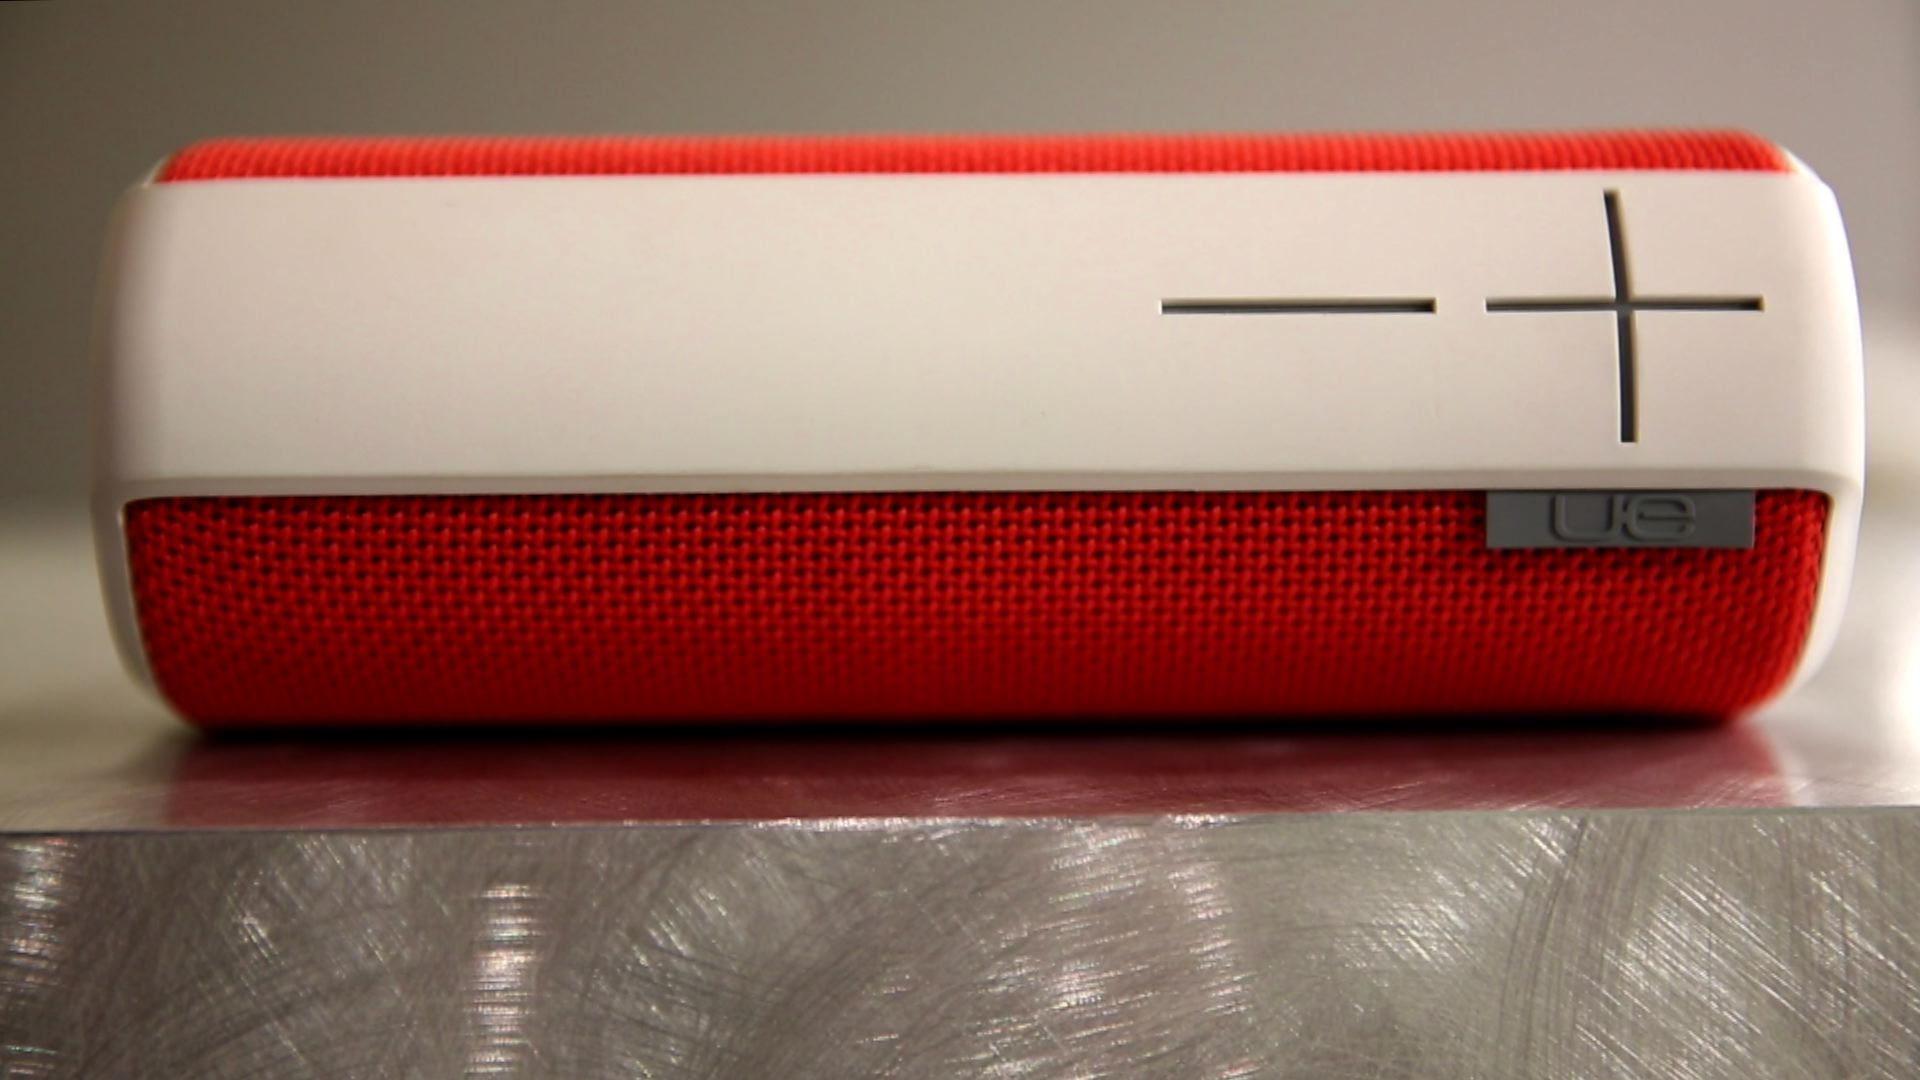 Video: UE Boom: Still a great portable Bluetooth speaker a year after its release